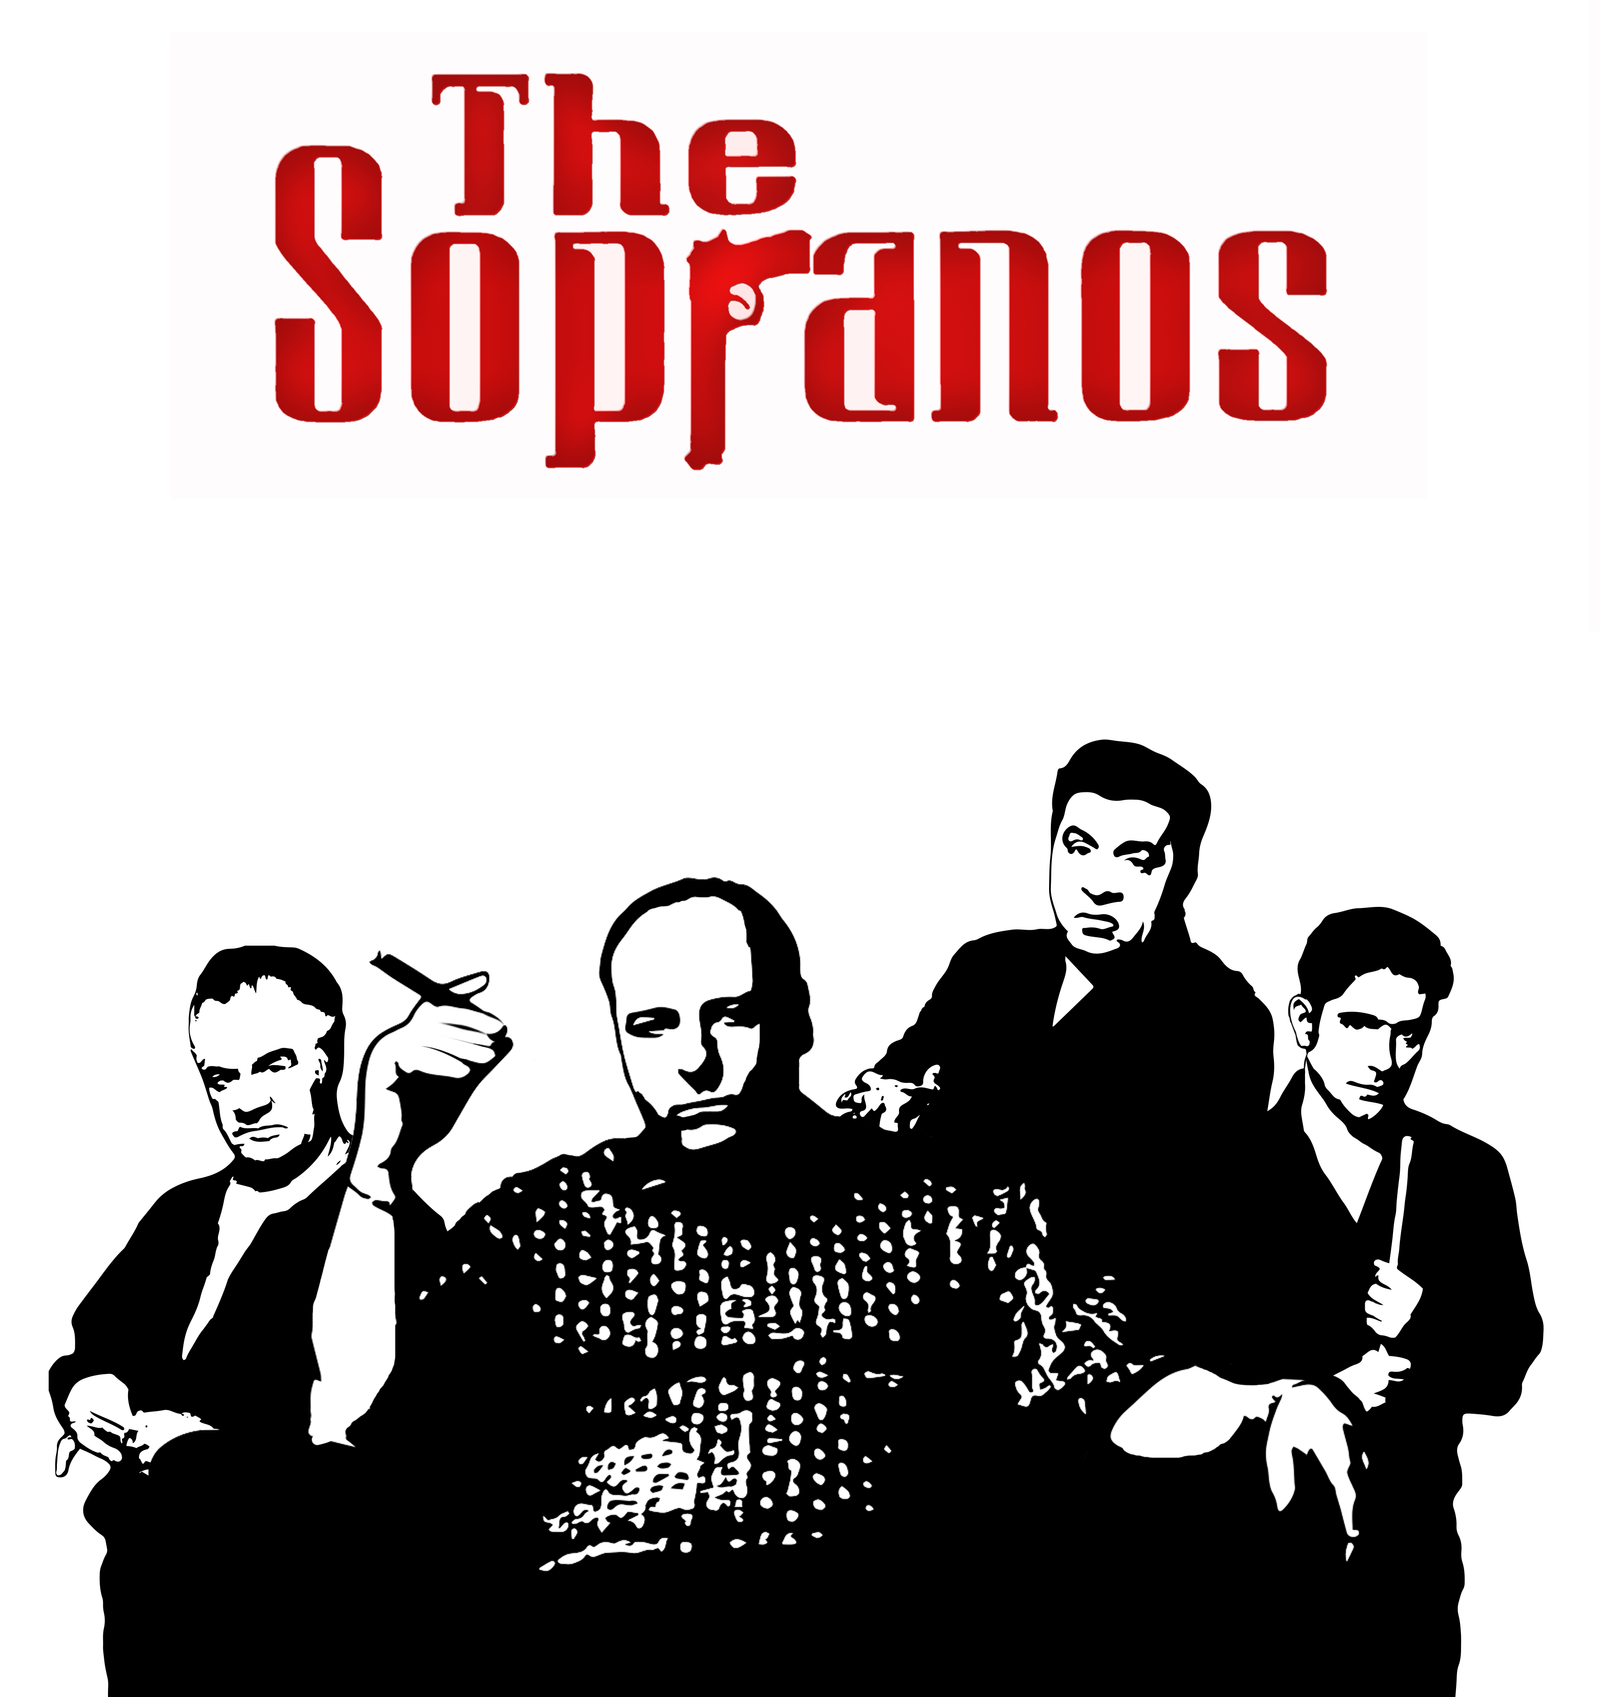 the sopranos by villamide on deviantart